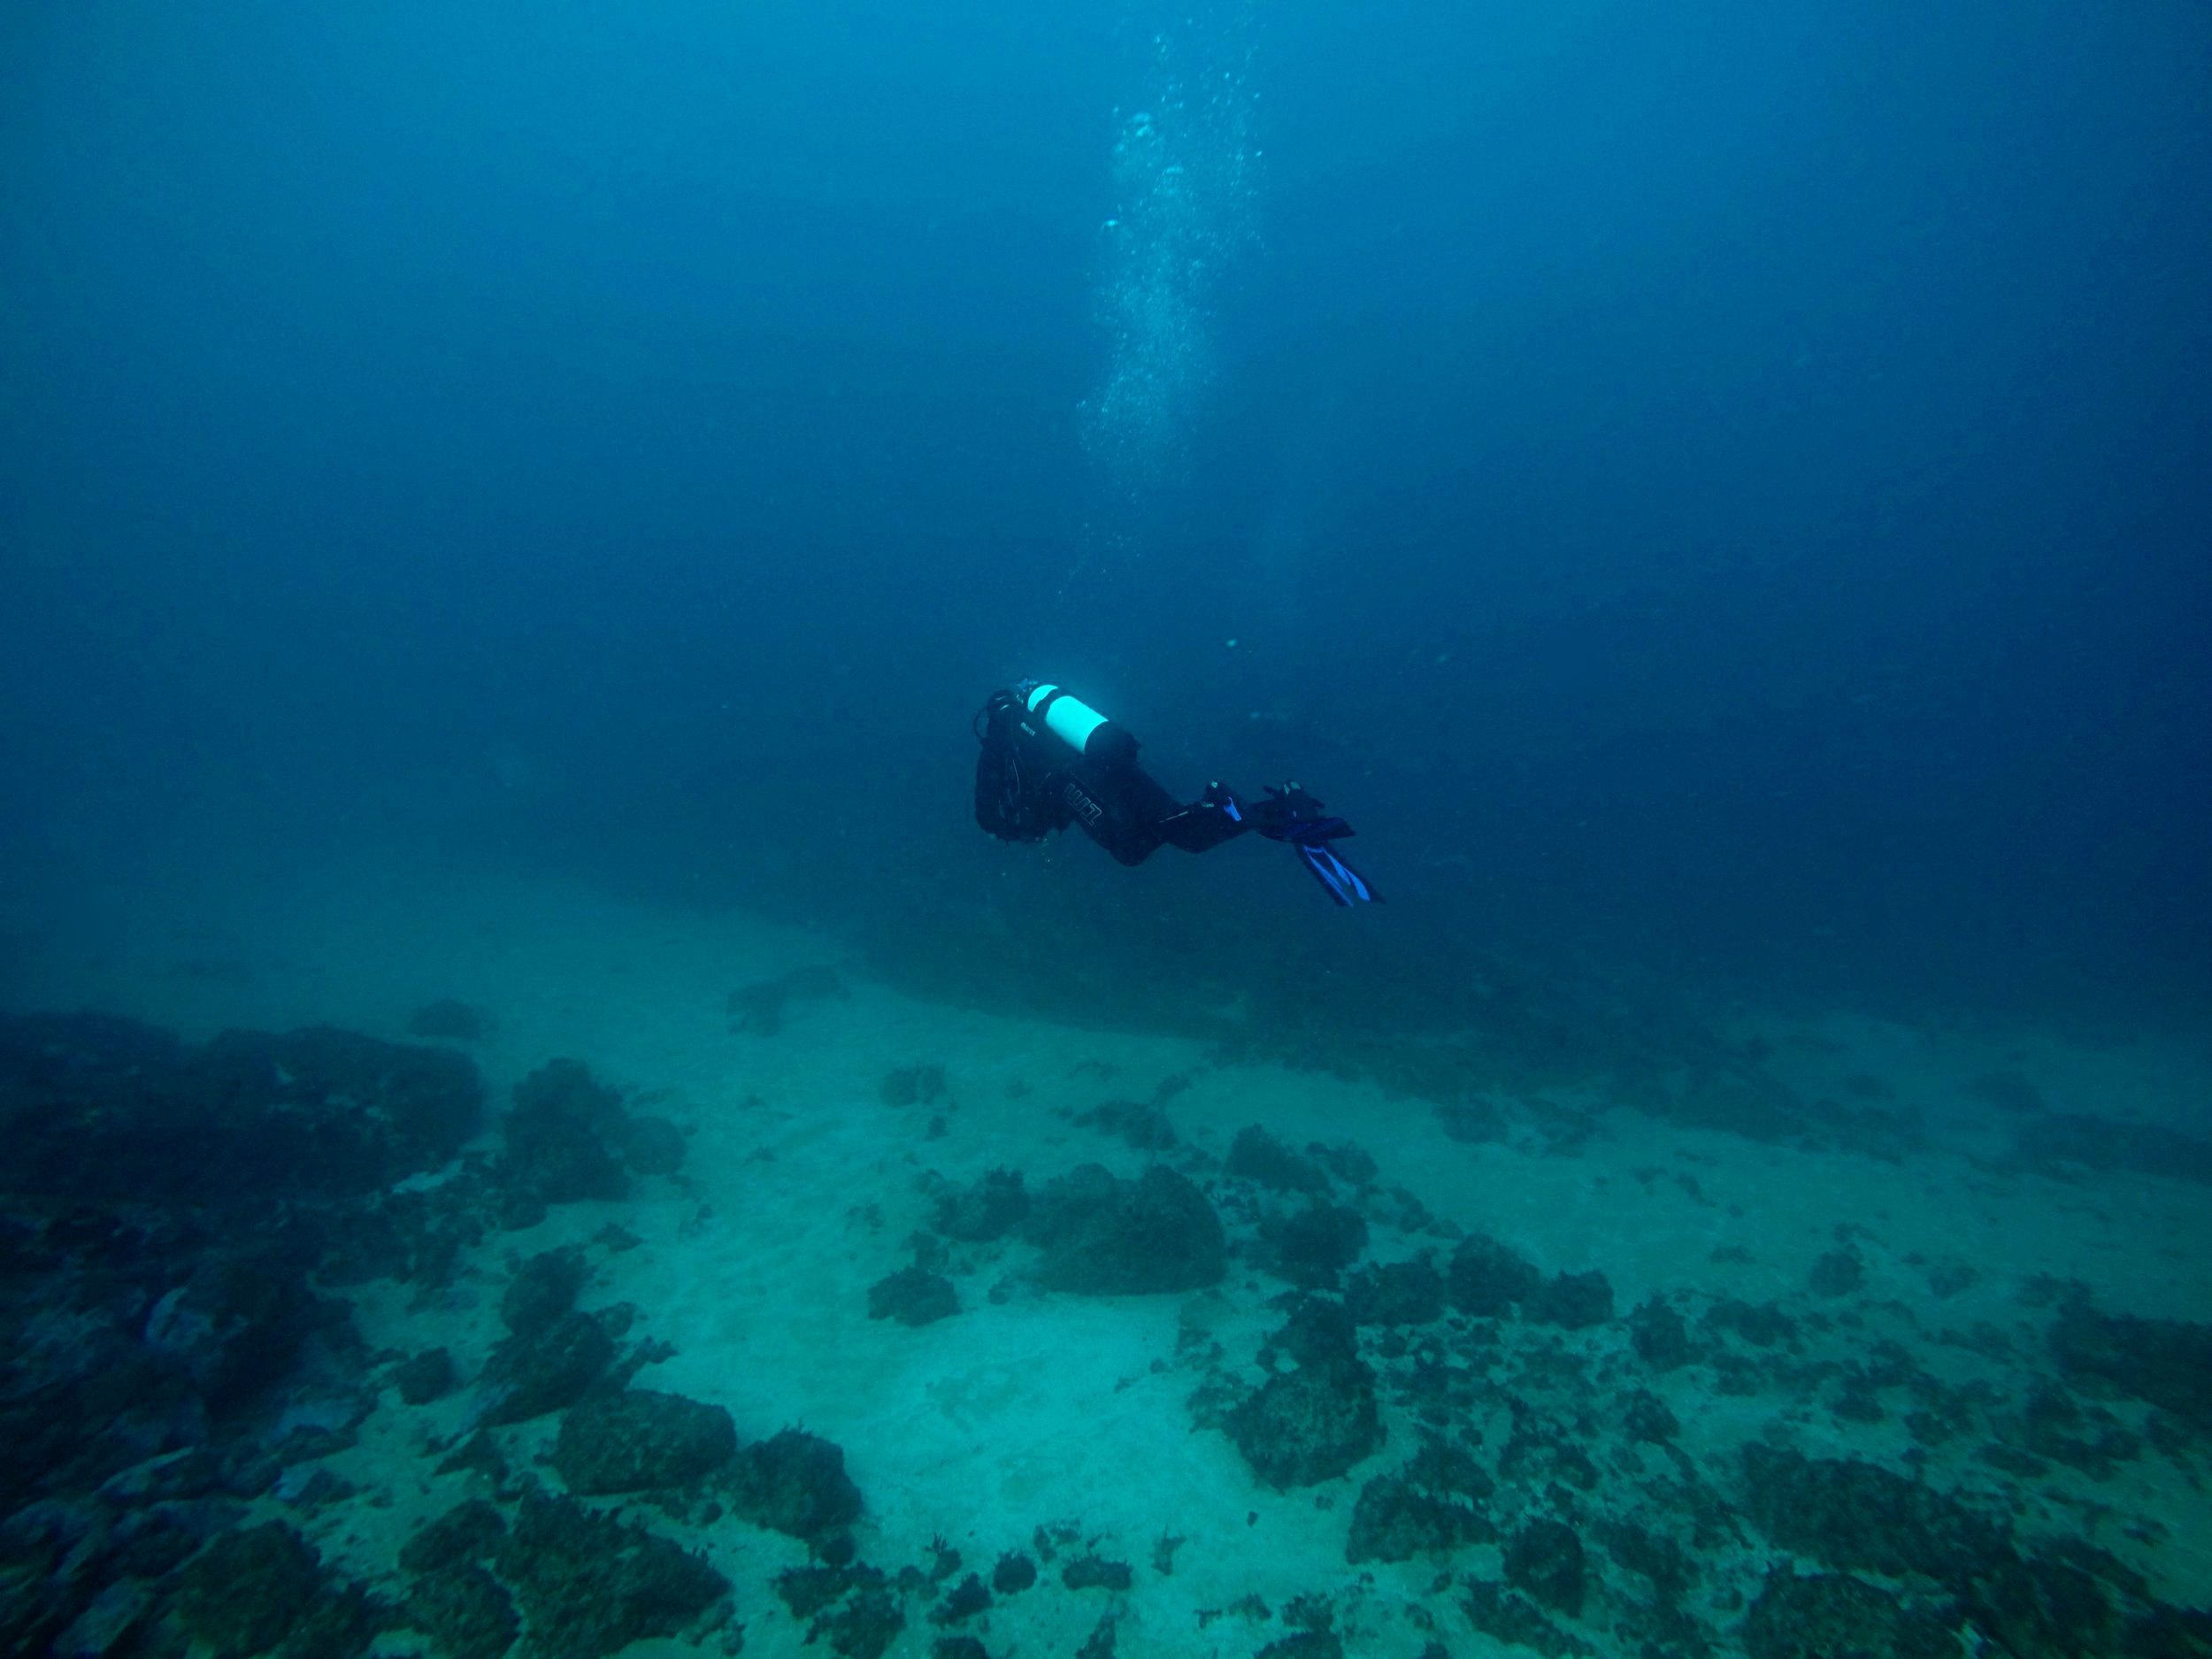 Buoyant space, self contained - 30 metres below (100 ft) South Solitary Island, off Coffs Harbour, NSW, 2014